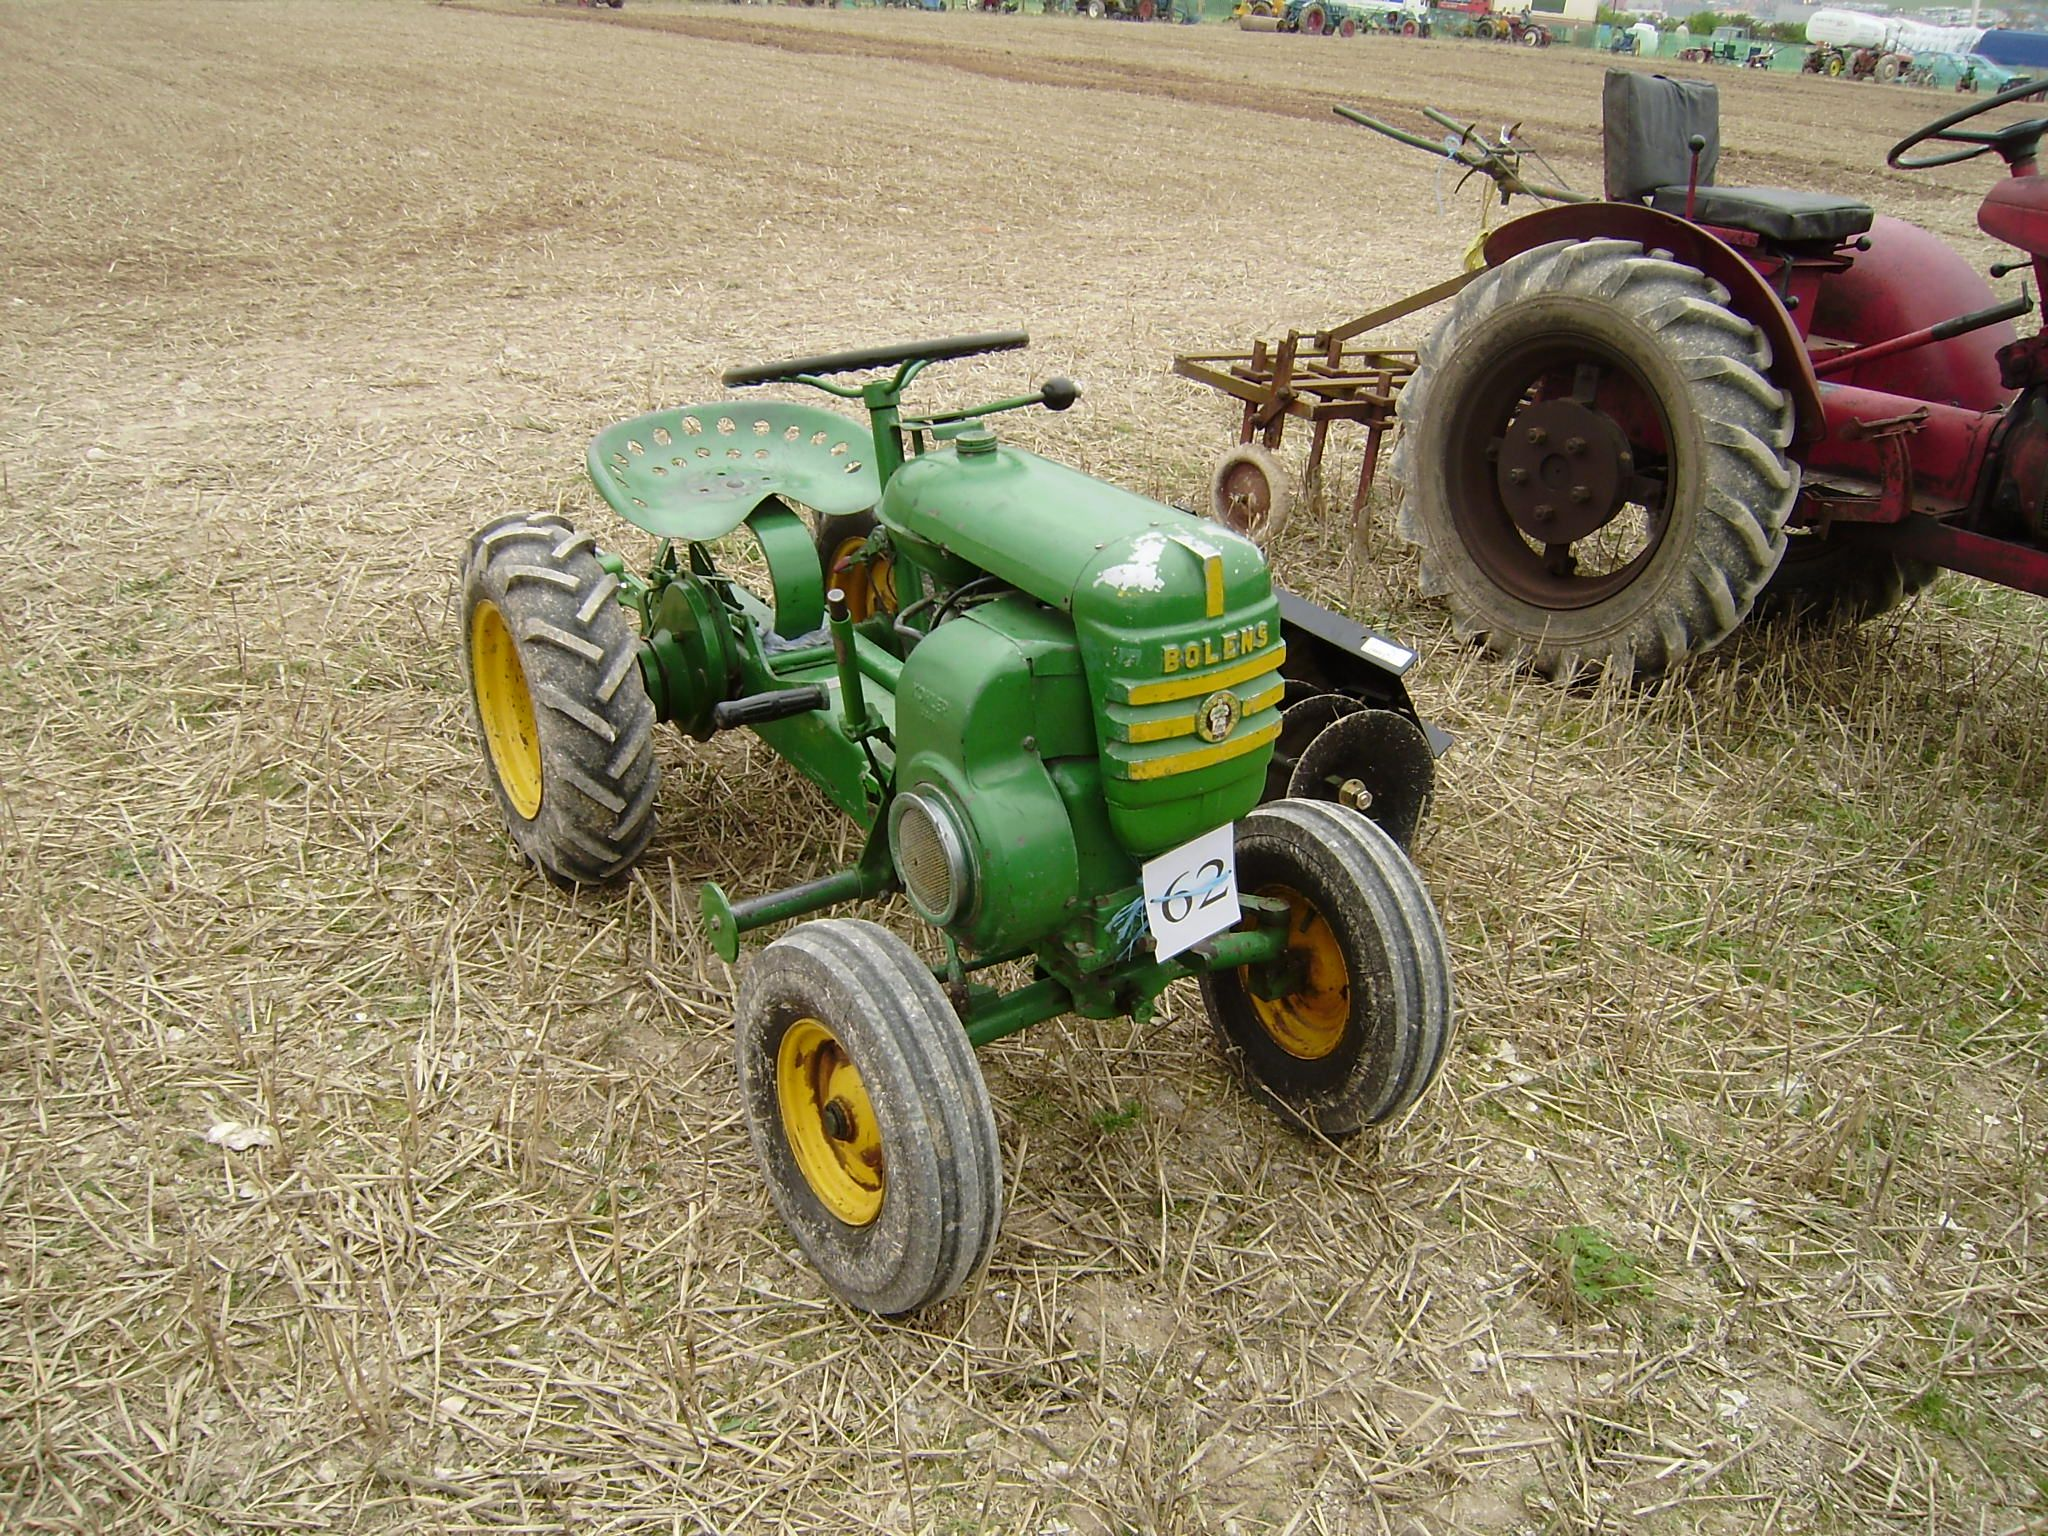 A B Ad B D E Ef E Aa besides A also Bebeb D F Ea E Dca Ccea Ford Tractors Pump besides Tra Rd Funcl furthermore F B E D B F Dcfbe Cd Antique Tractors Vintage Tractors. on old ford tractor attachments